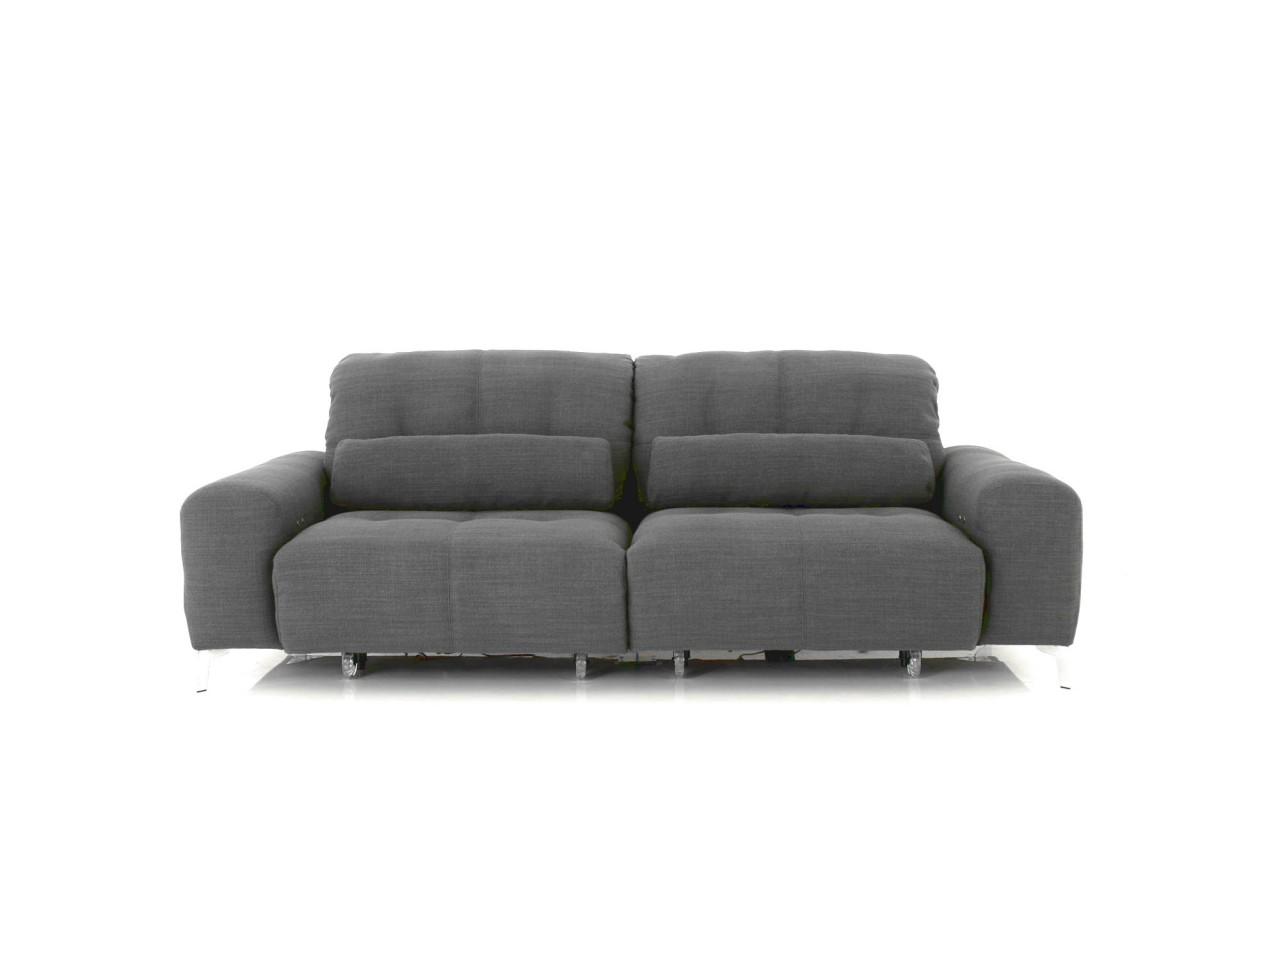 e schillig sofa awesome e schillig sofa interesting ewald. Black Bedroom Furniture Sets. Home Design Ideas